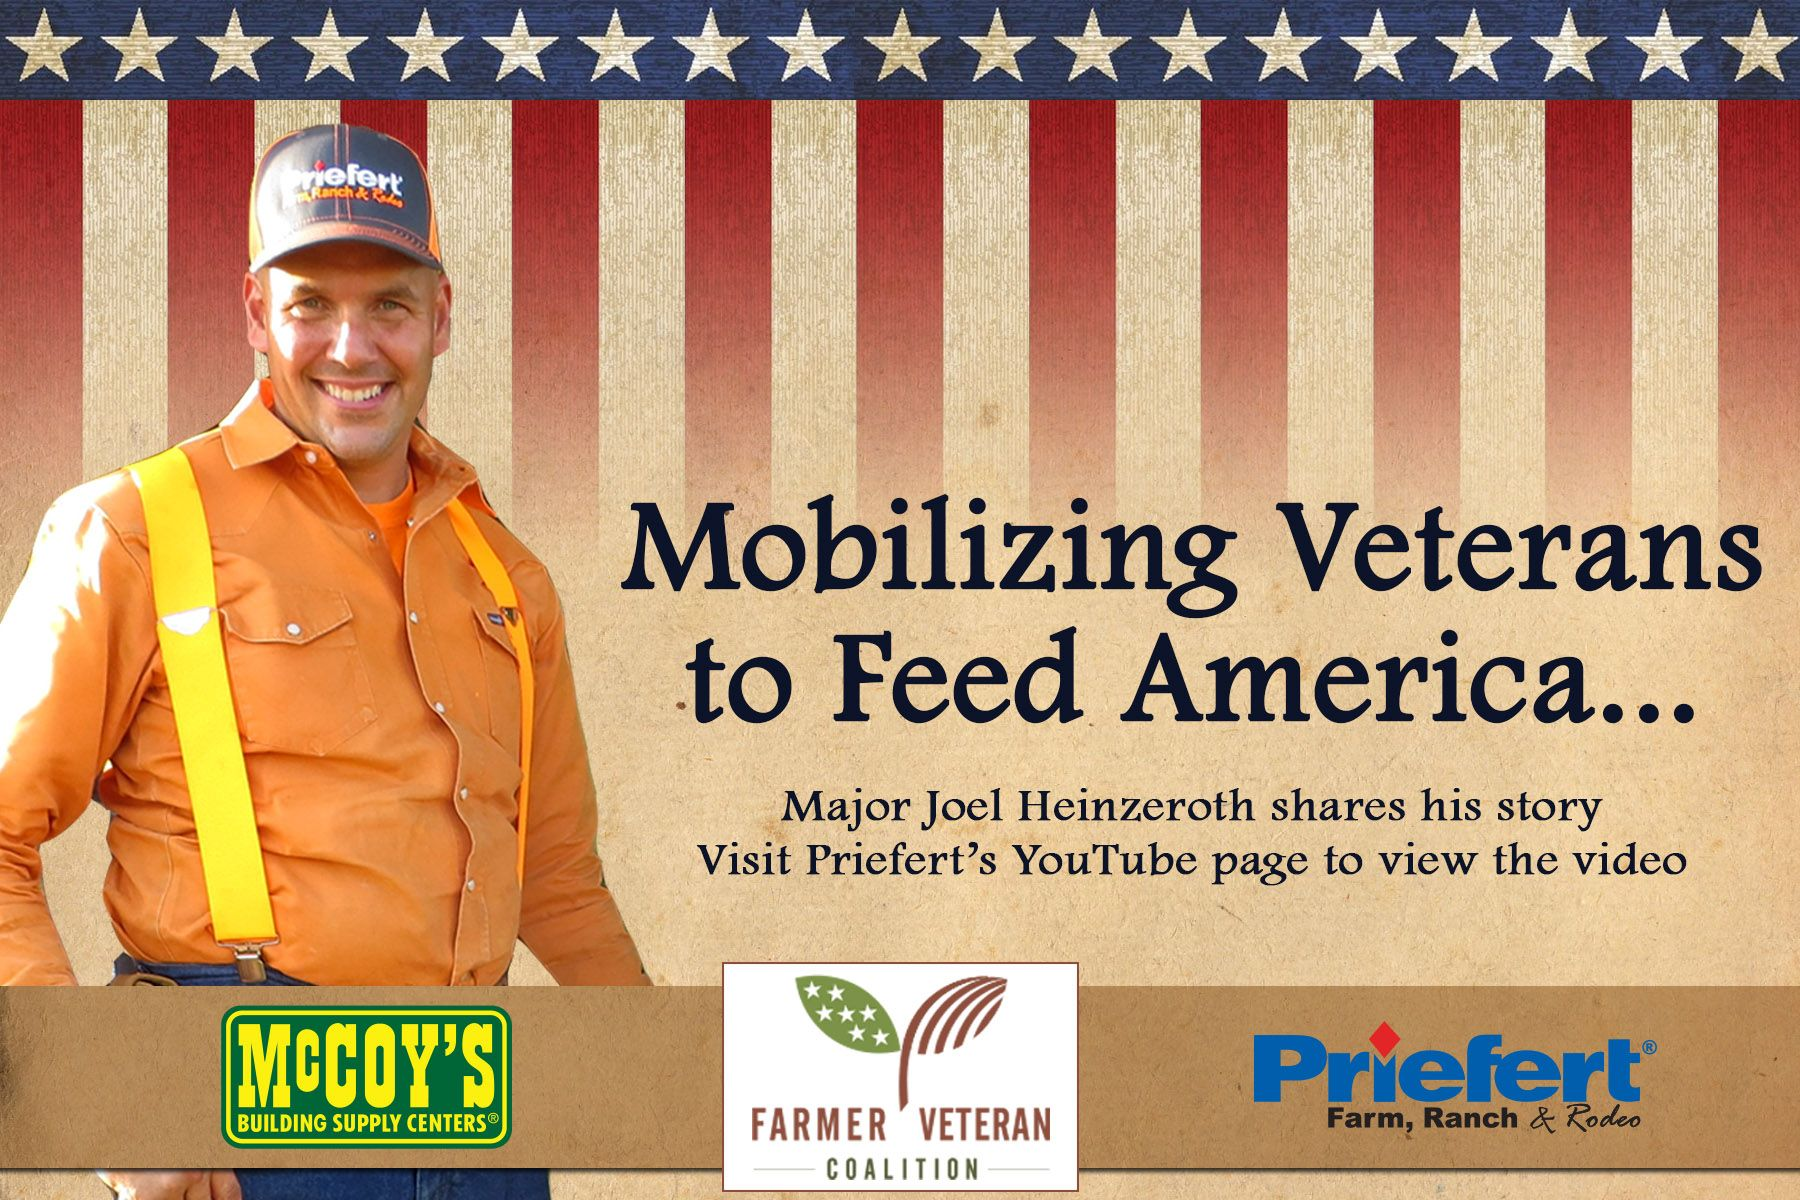 Priefert strongly supports our military!